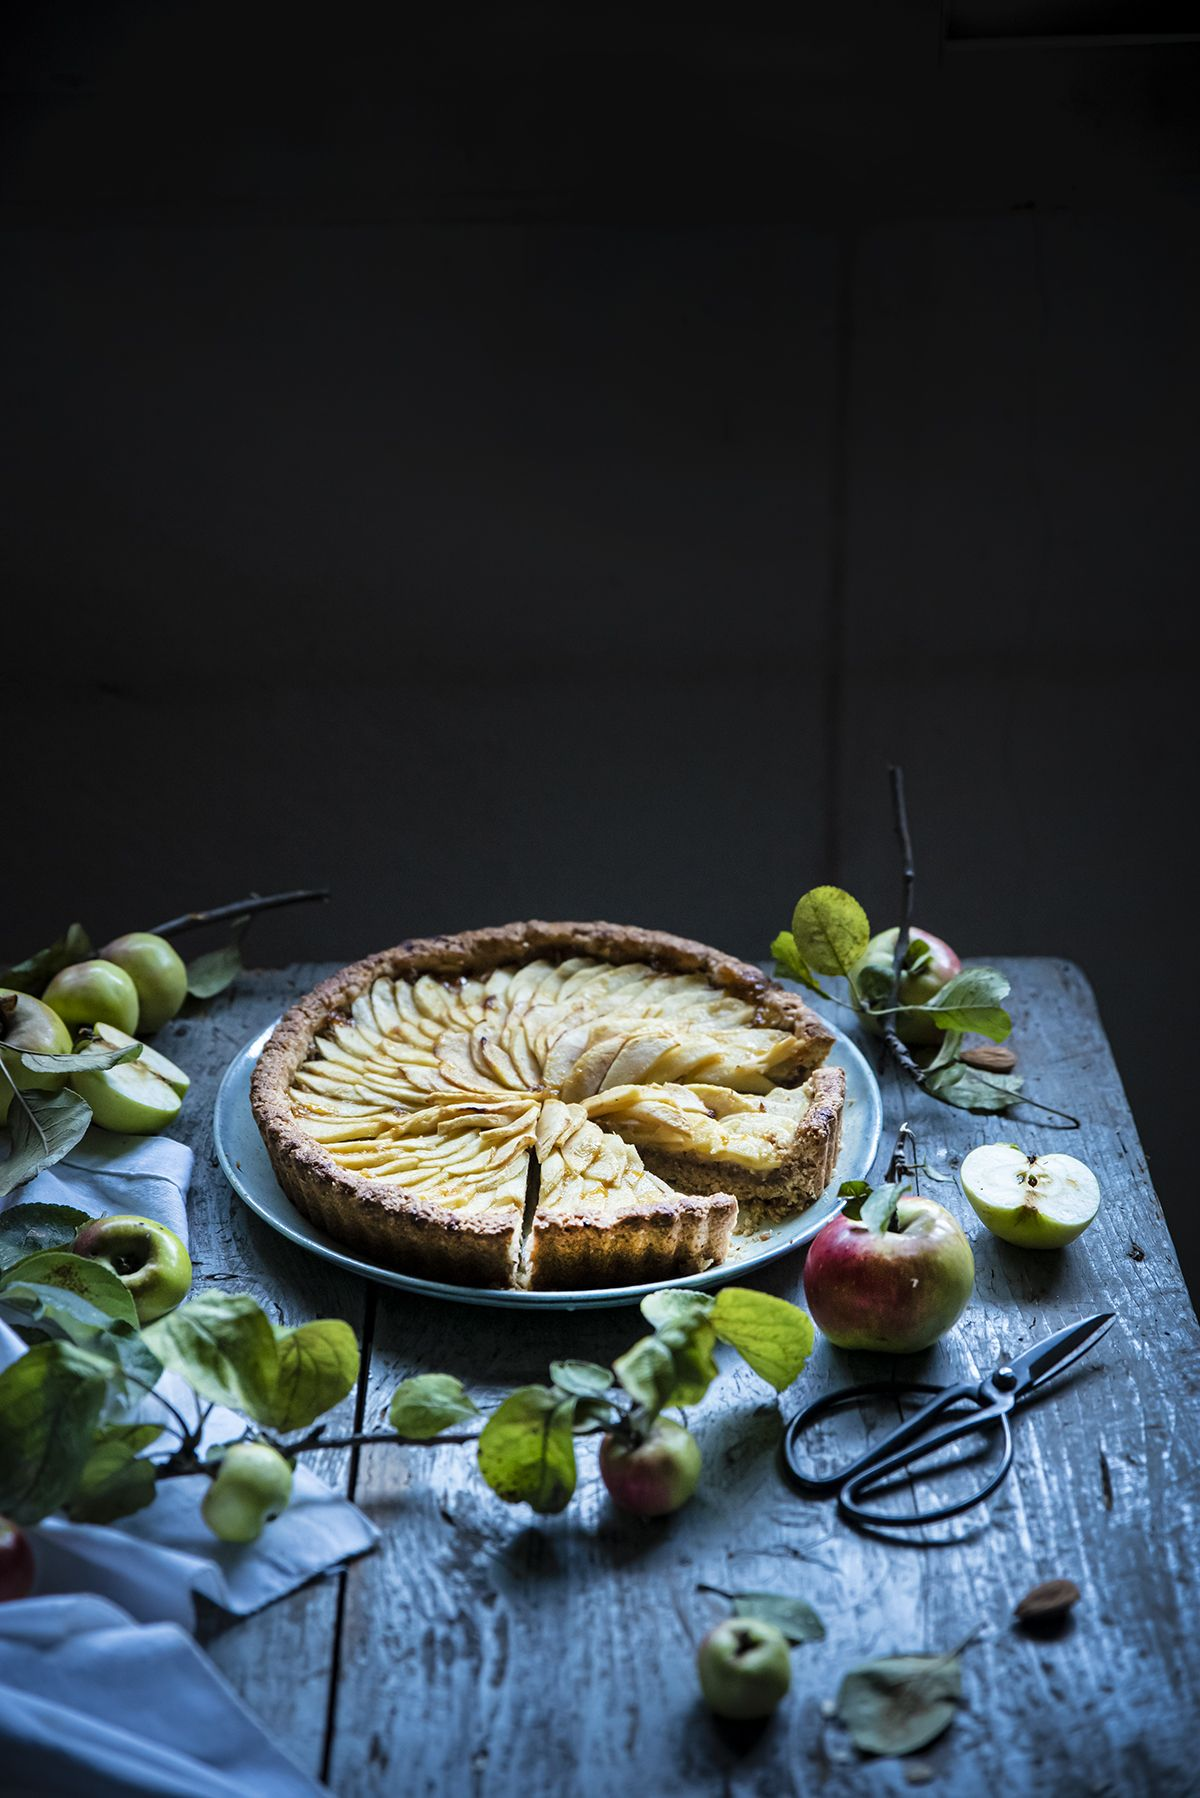 Apple Tart With Almonds Dates And Oats